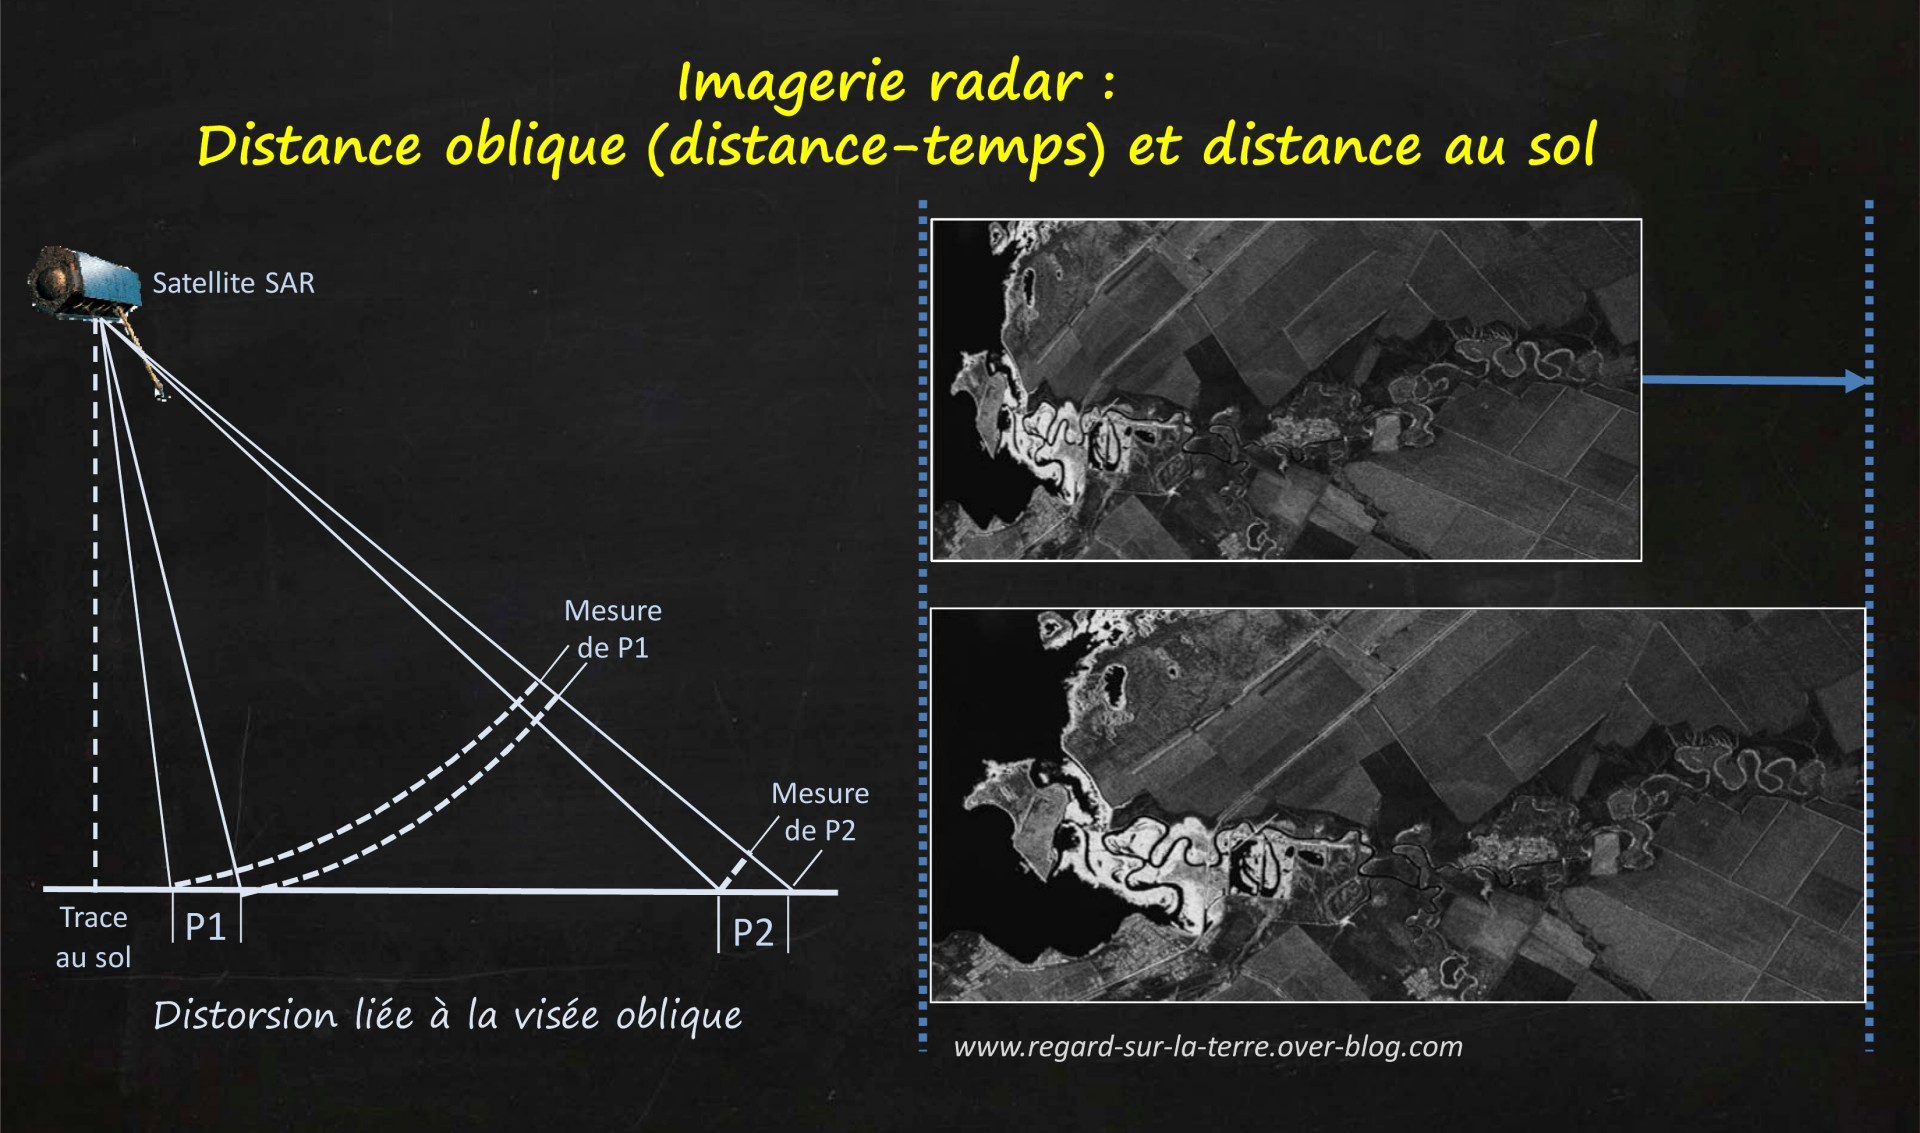 Satellite - Radar - SAR - Synthetic Aperture radar - Visée oblique - Slant range - Géométrie - Portée - Azimut - Distorsion - distance oblique - distance au sol